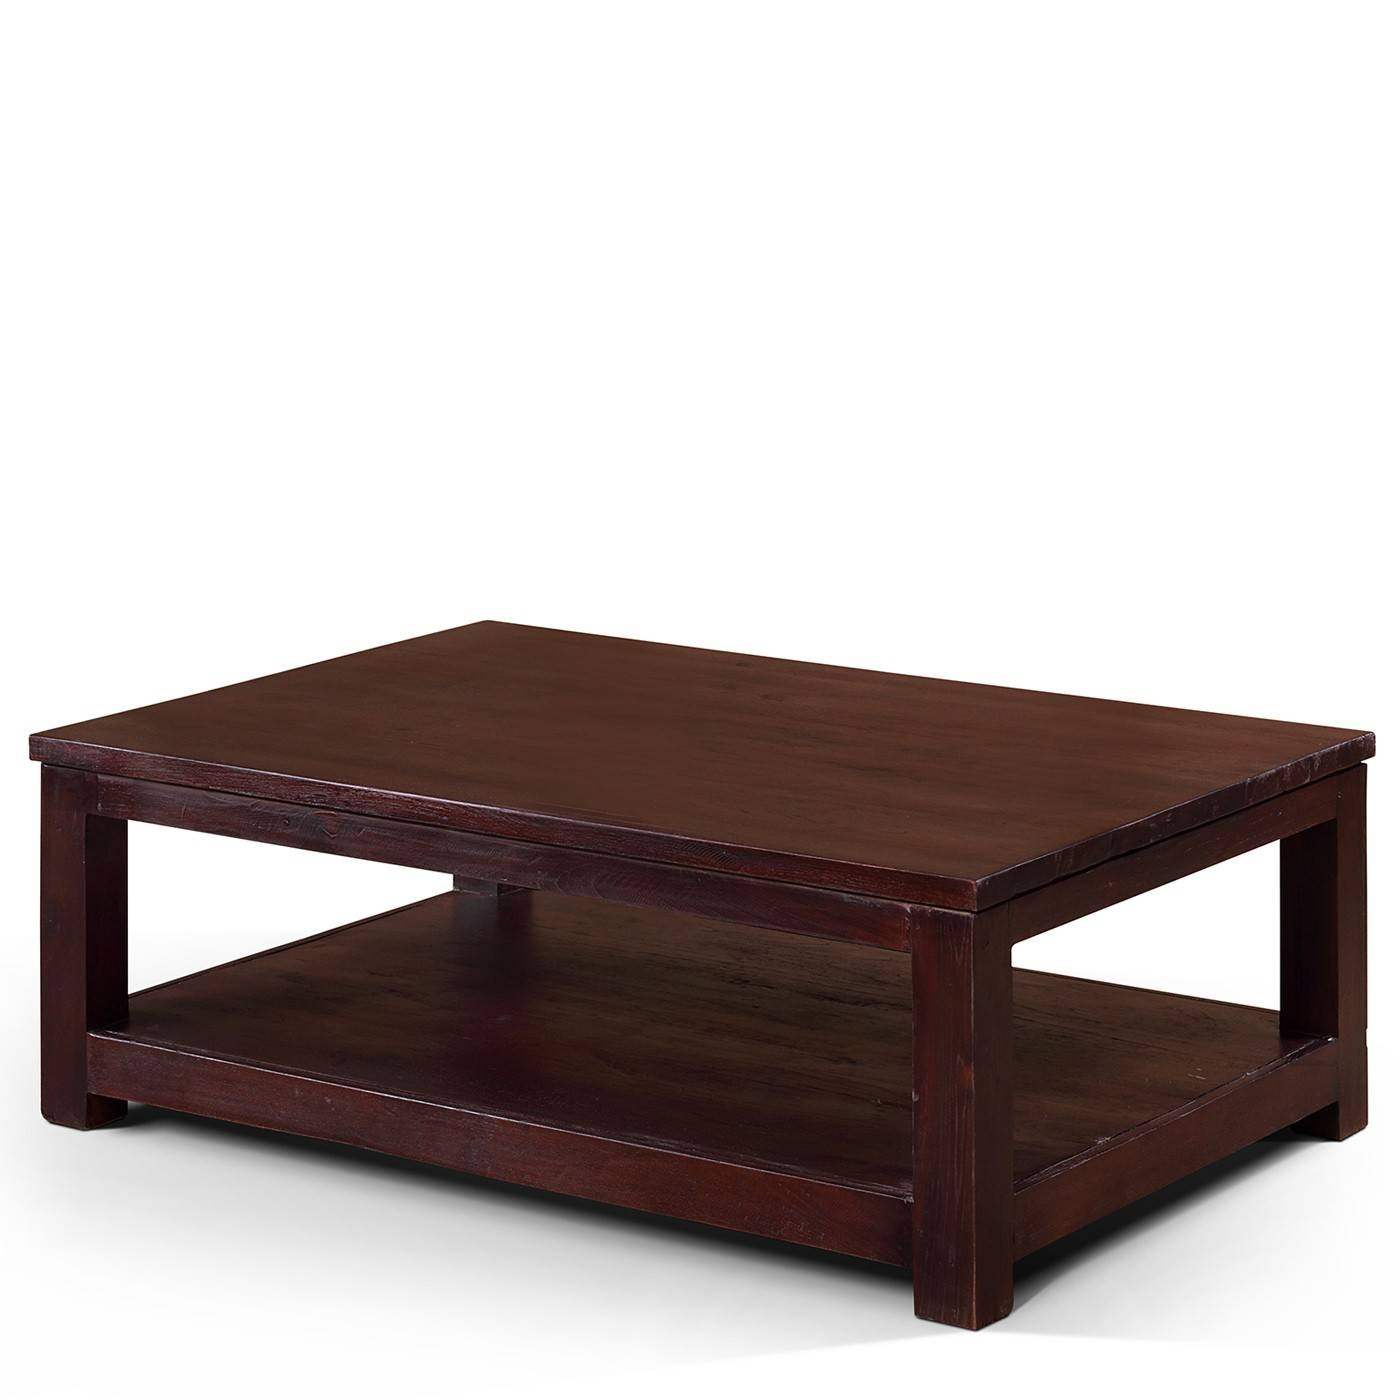 2017 Best of Small Coffee Tables With Shelf